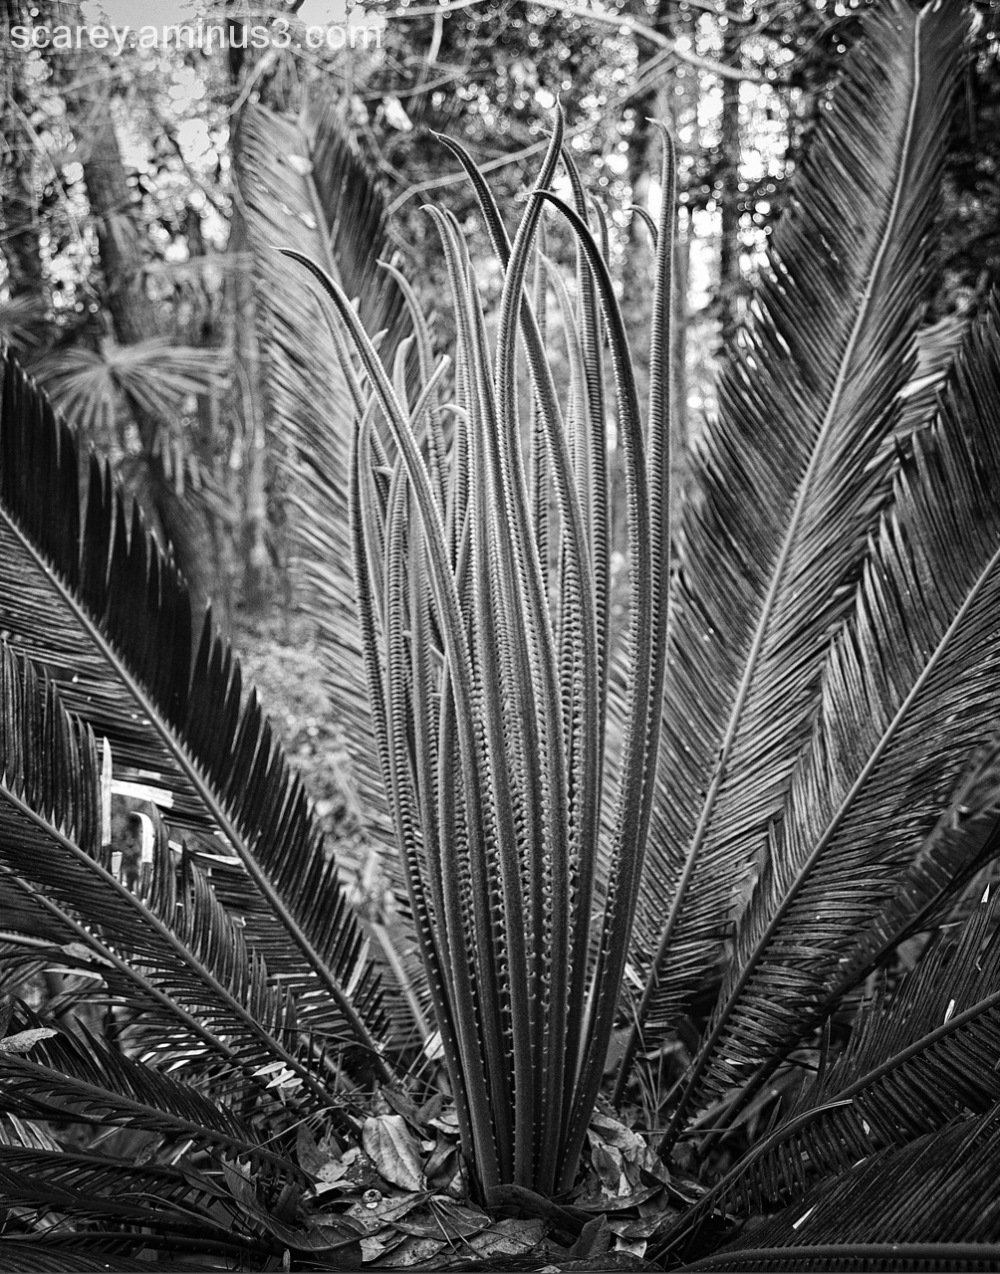 Cycad New Leaves